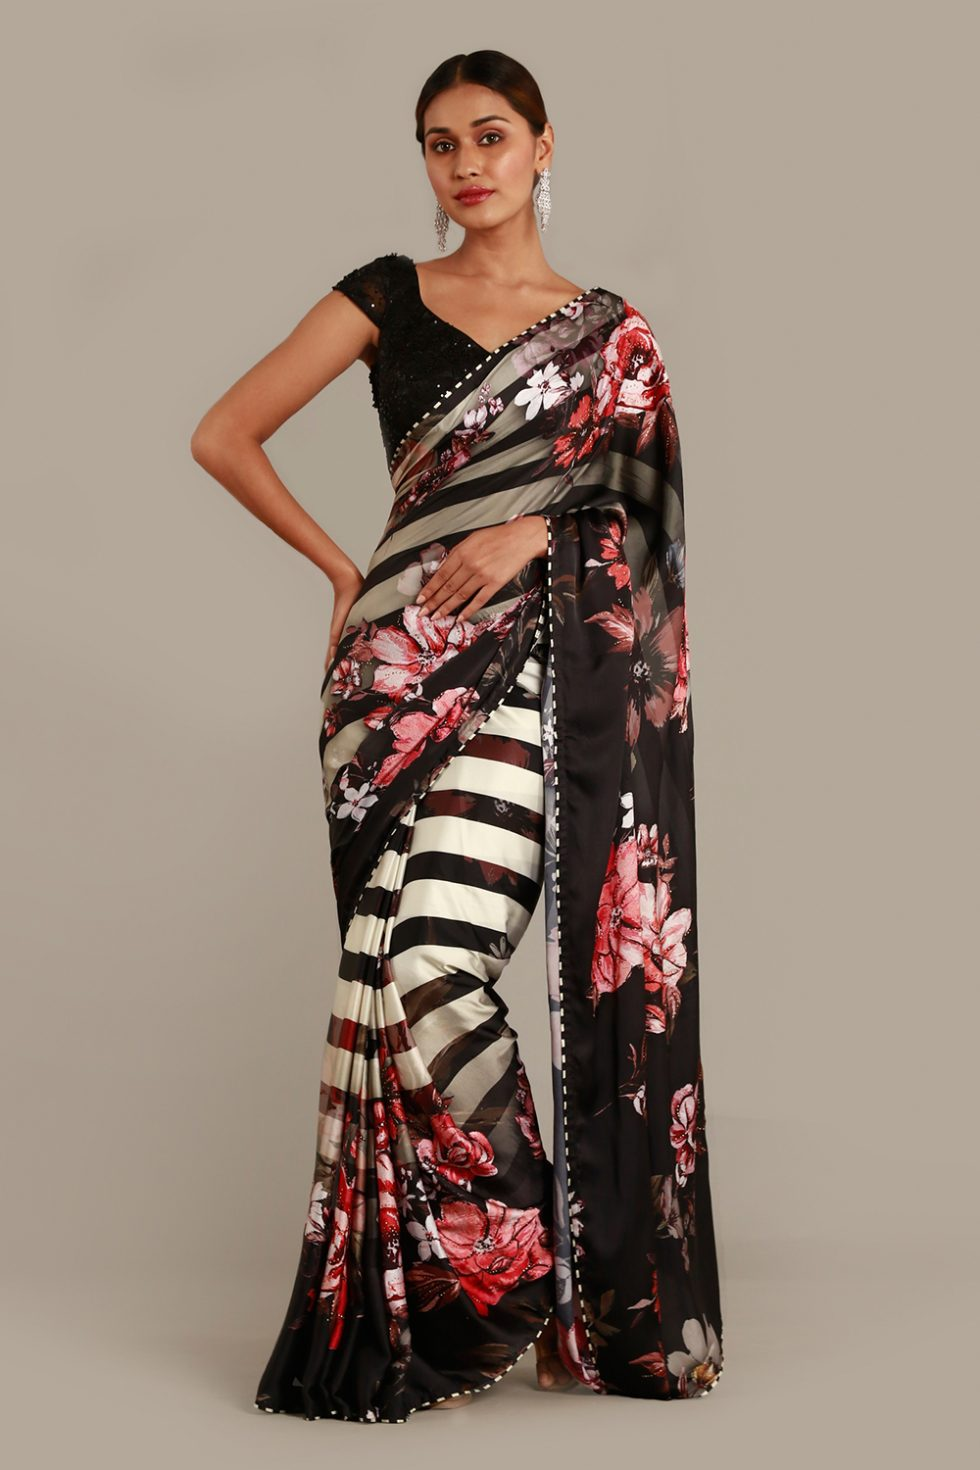 Raven black classic saree with white stripes, contrast floral motifs and matching thread work and sequin detailed black blouse